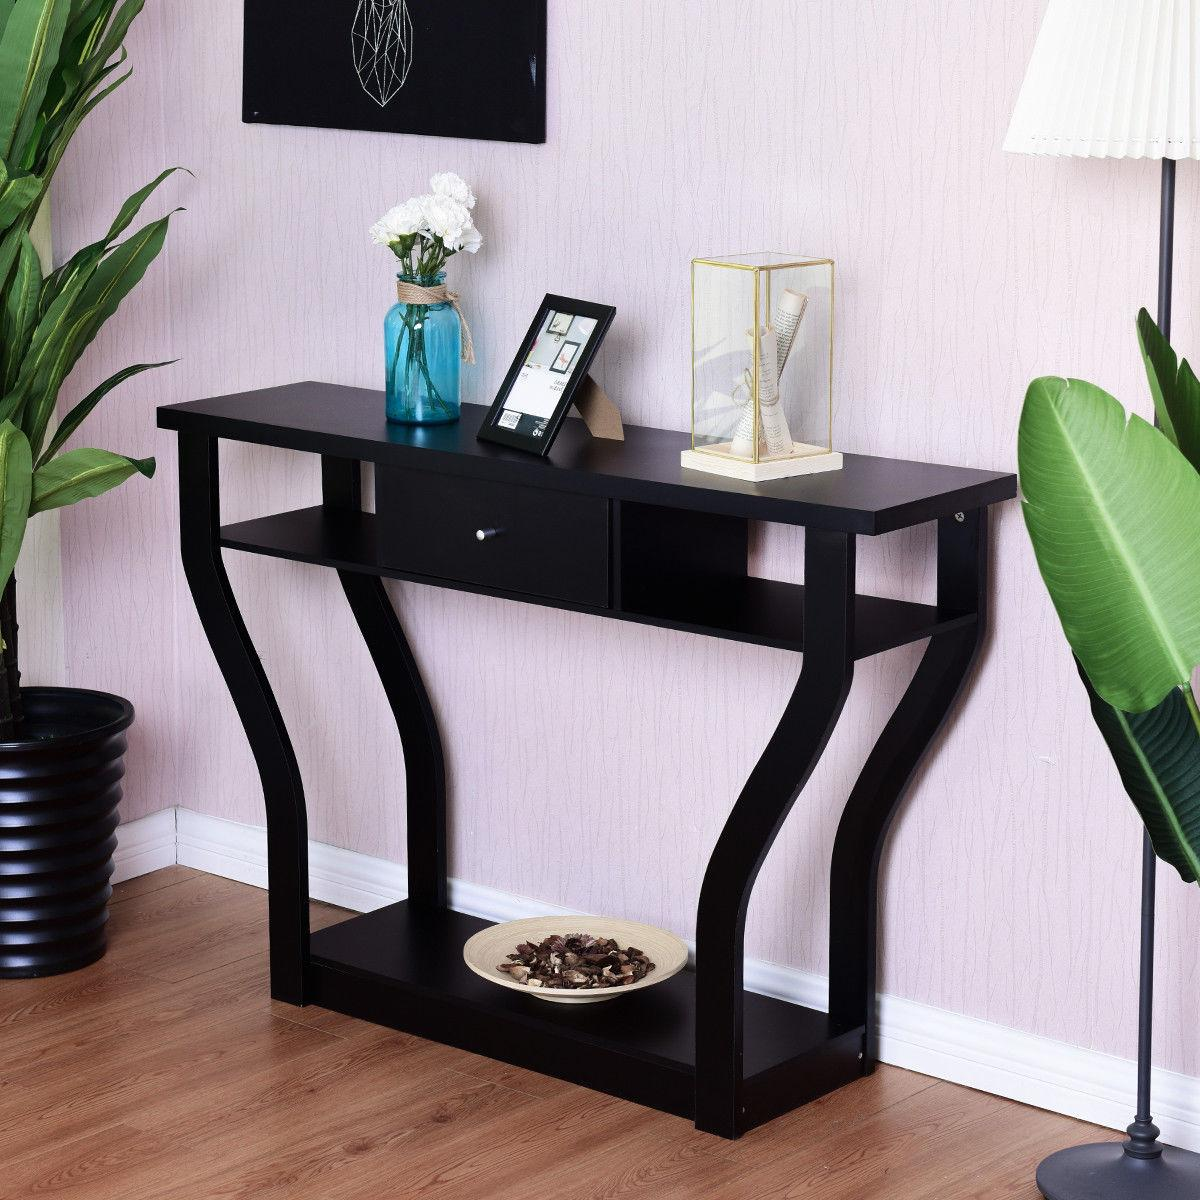 Accent Console Table Sofa Entryway Hallway Hall Furniture